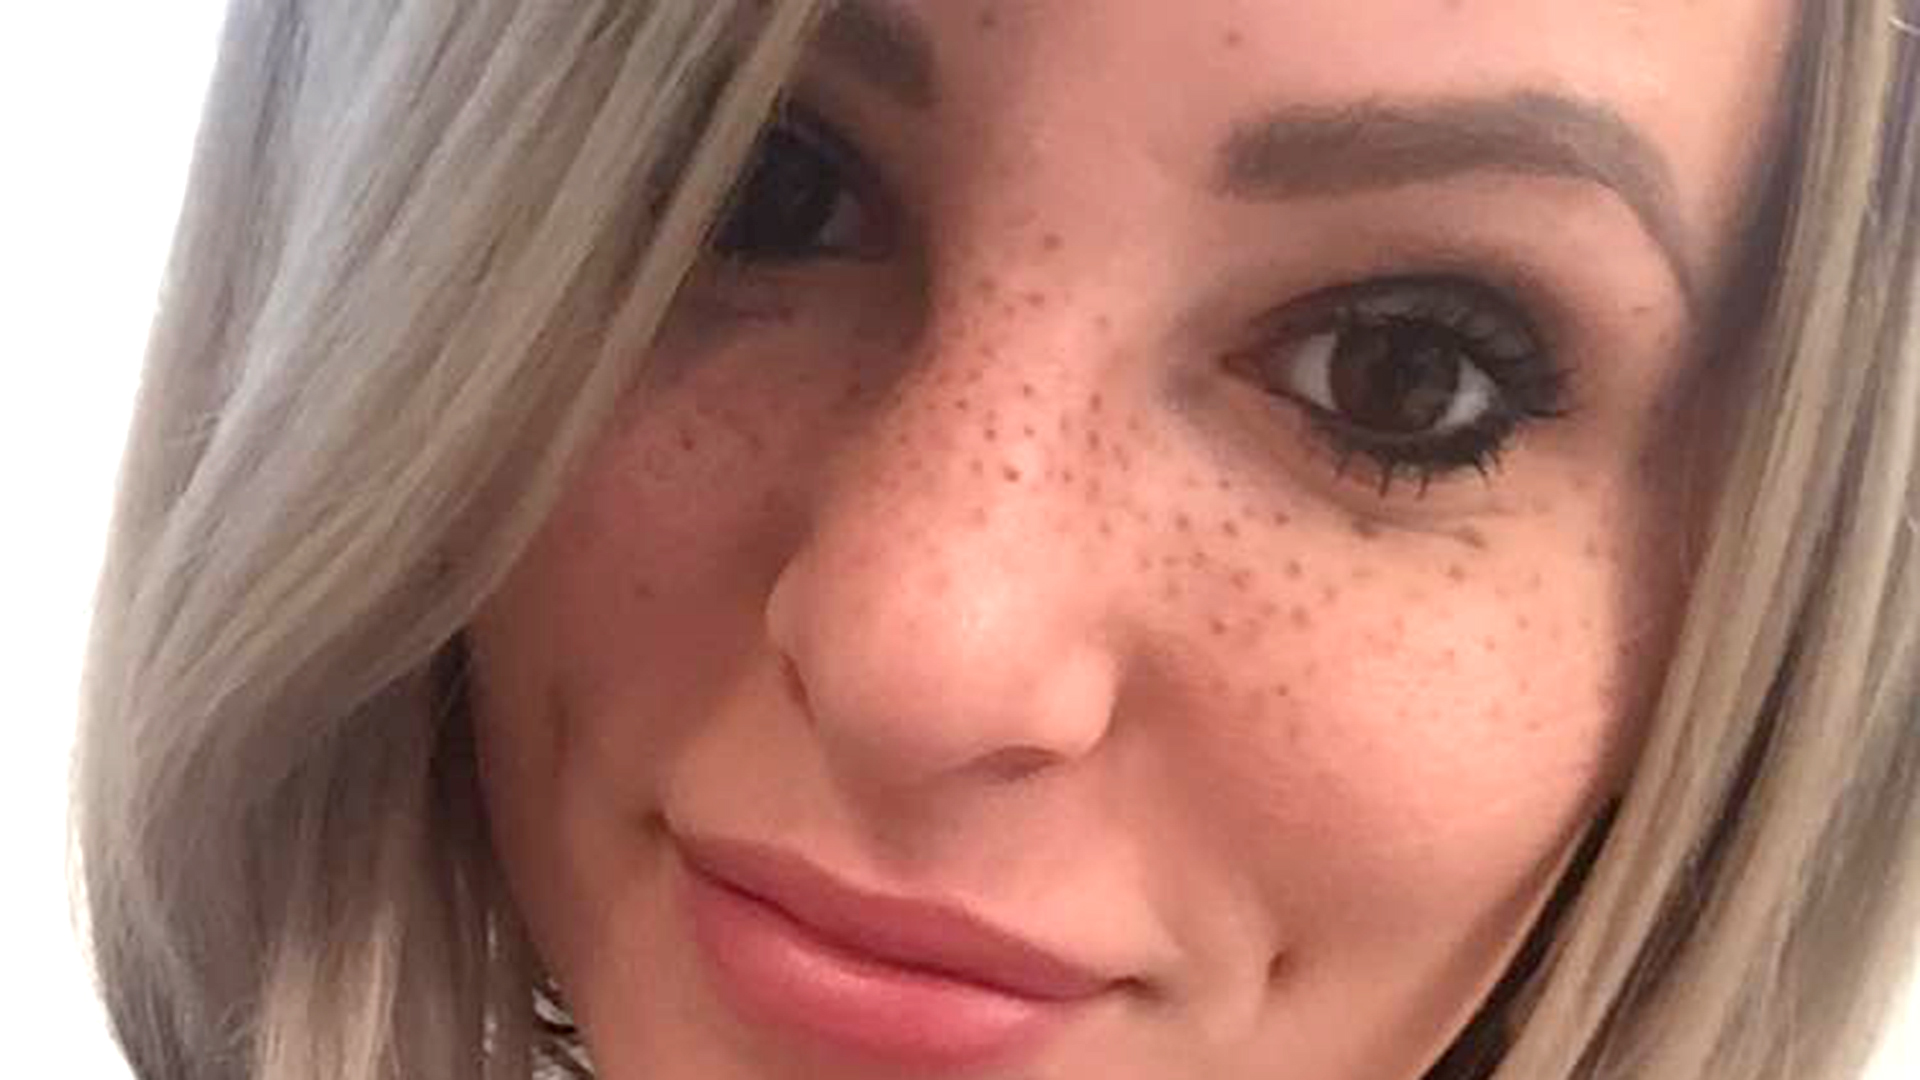 Freckle Tattoos Are The Latest Surprising Beauty Trend